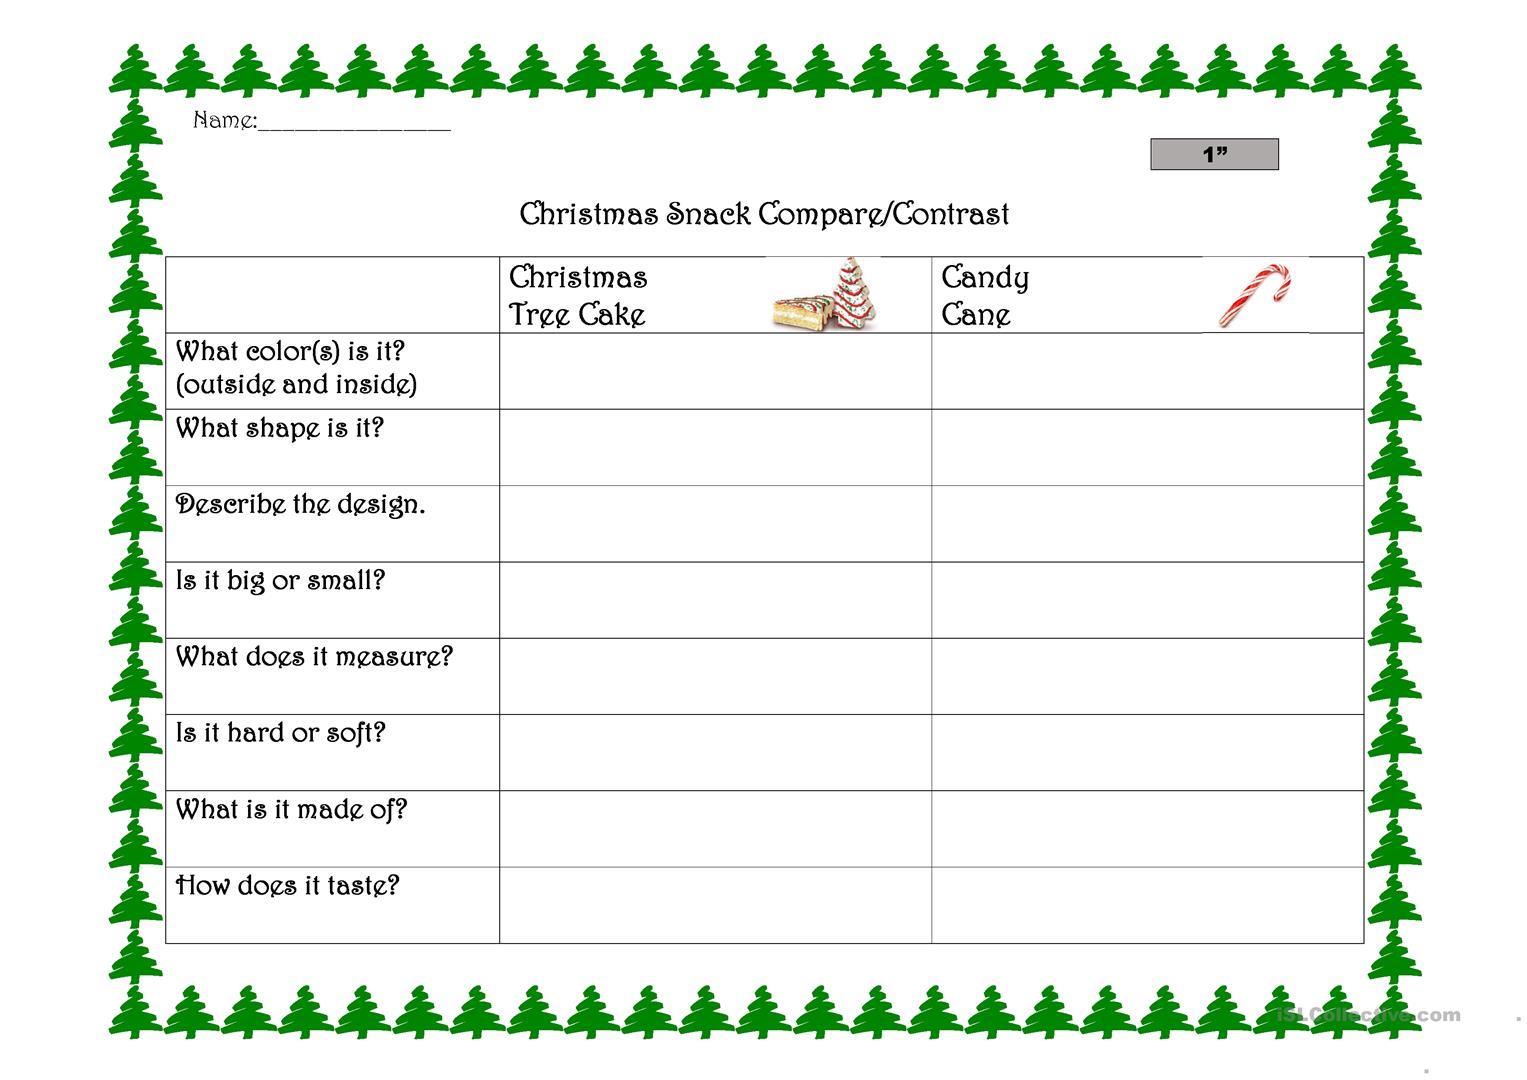 Christmas Snack Compare And Contrast Worksheet